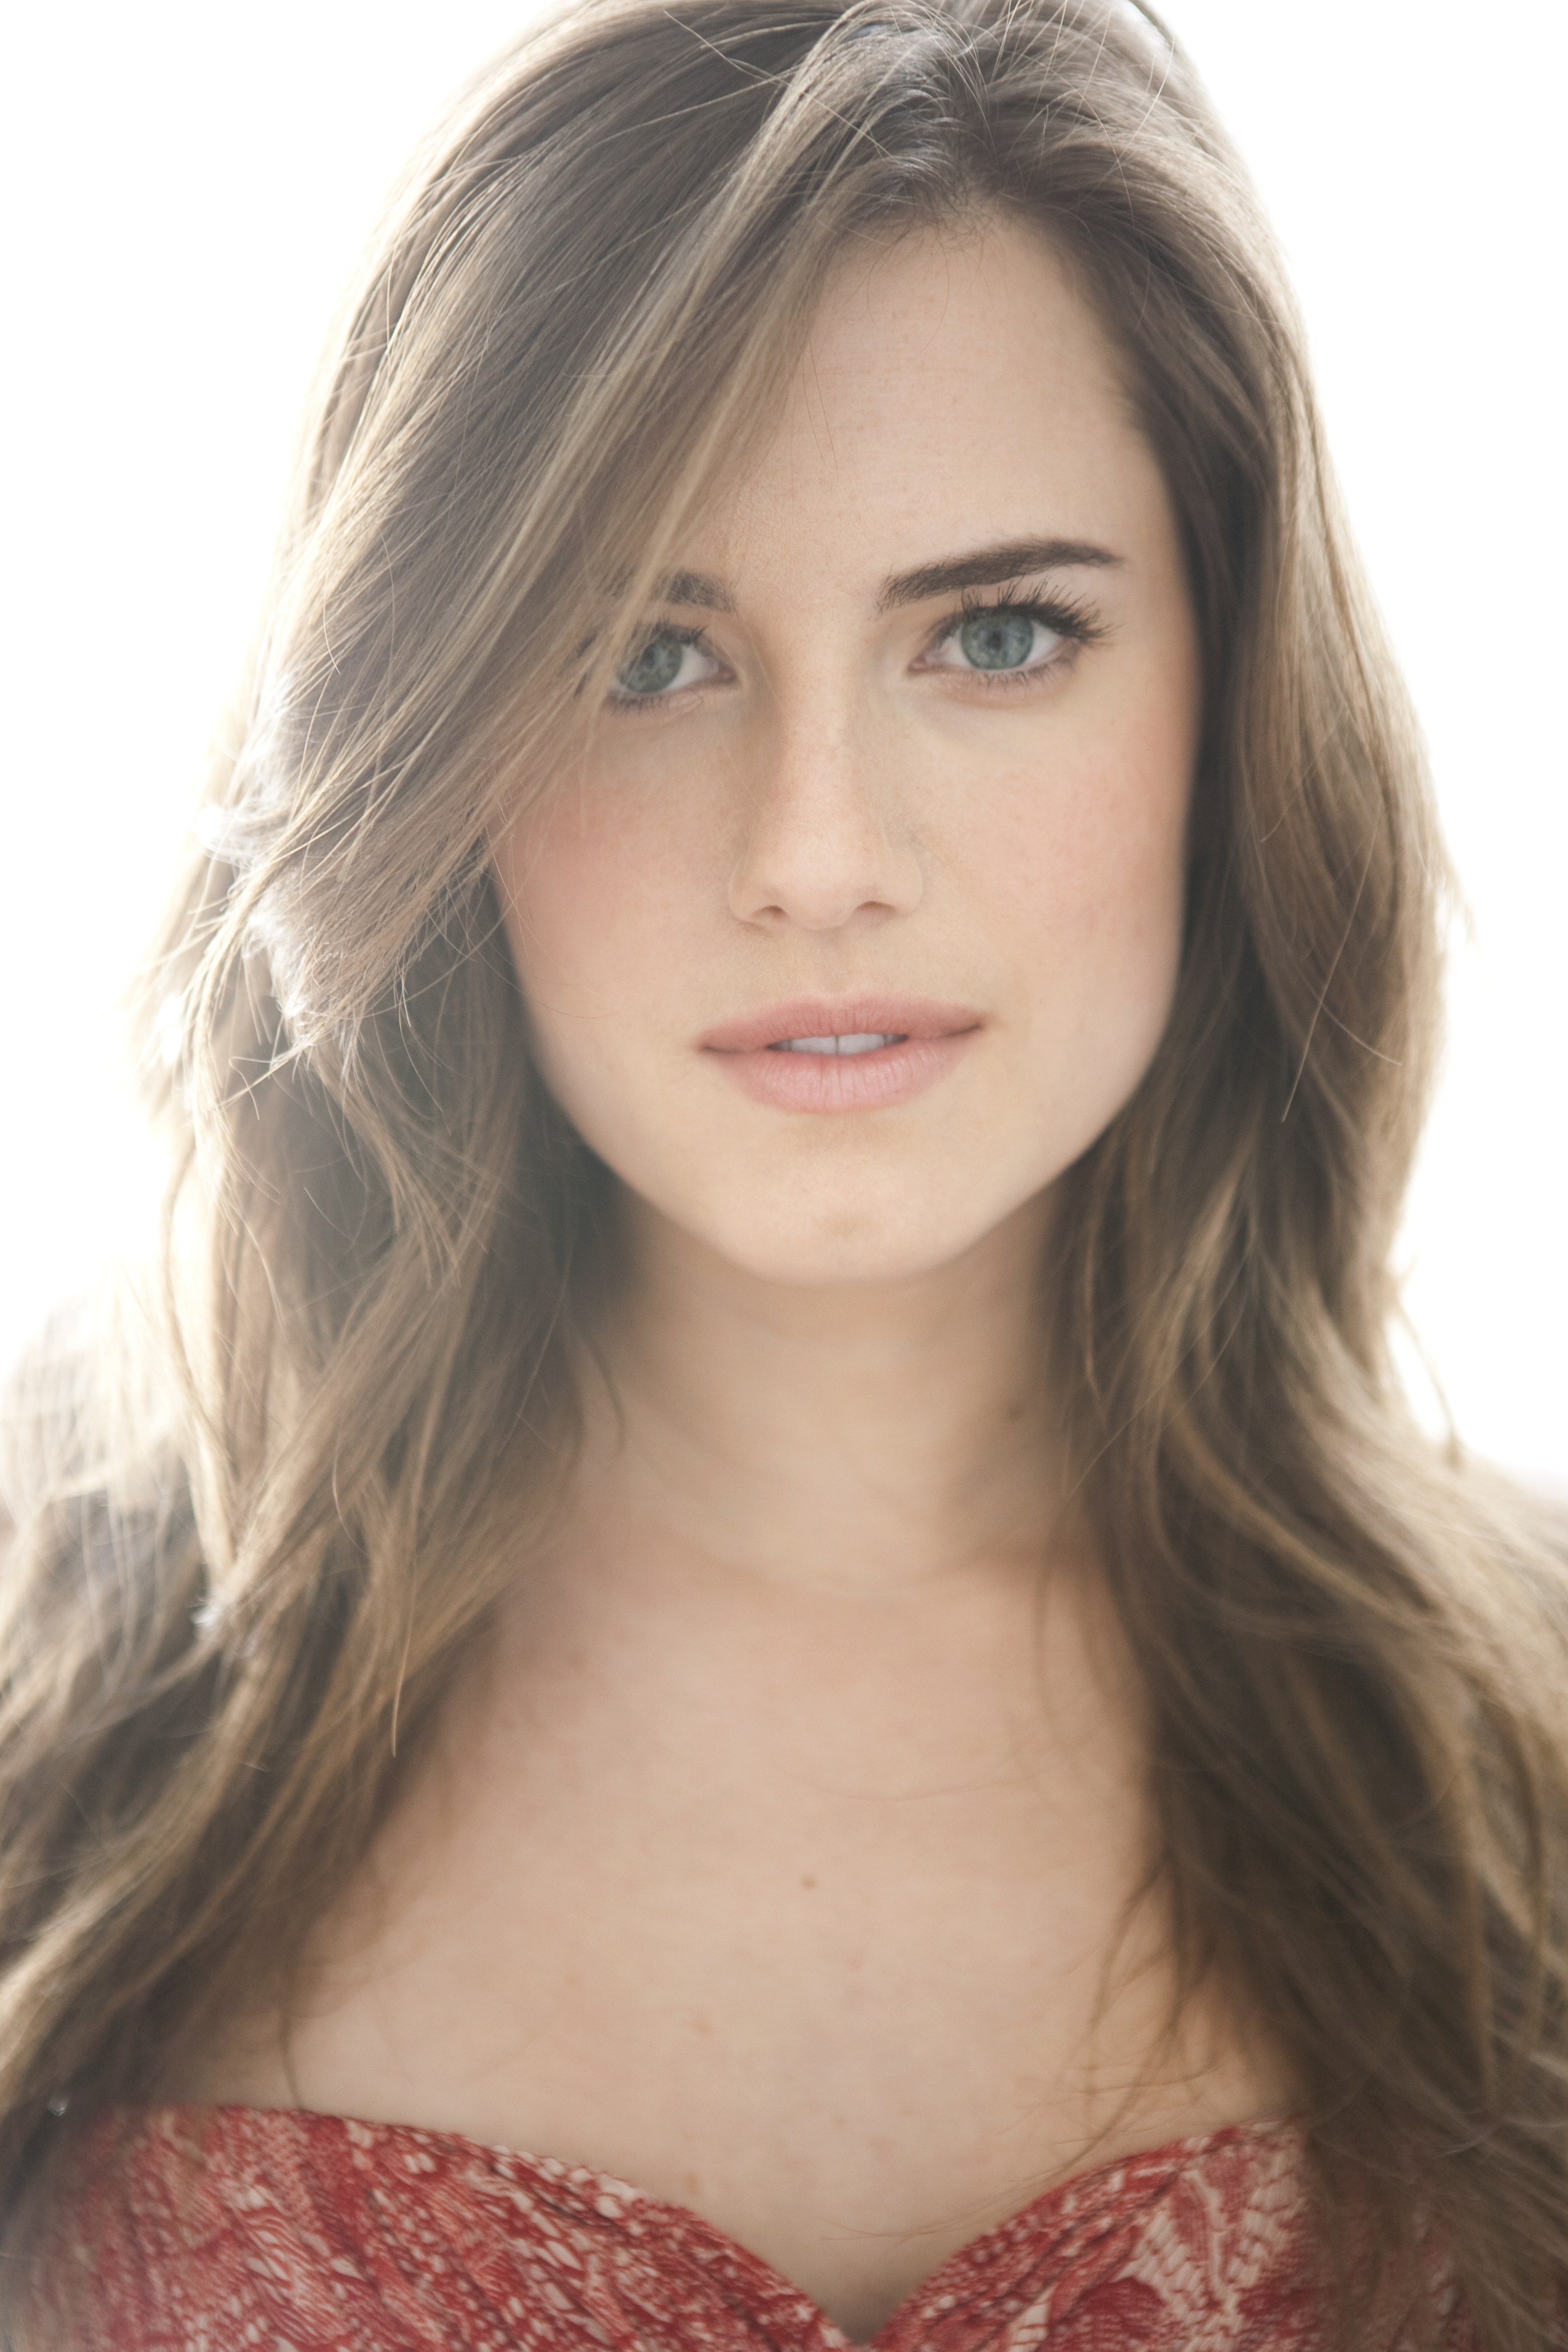 allison williams birth chart